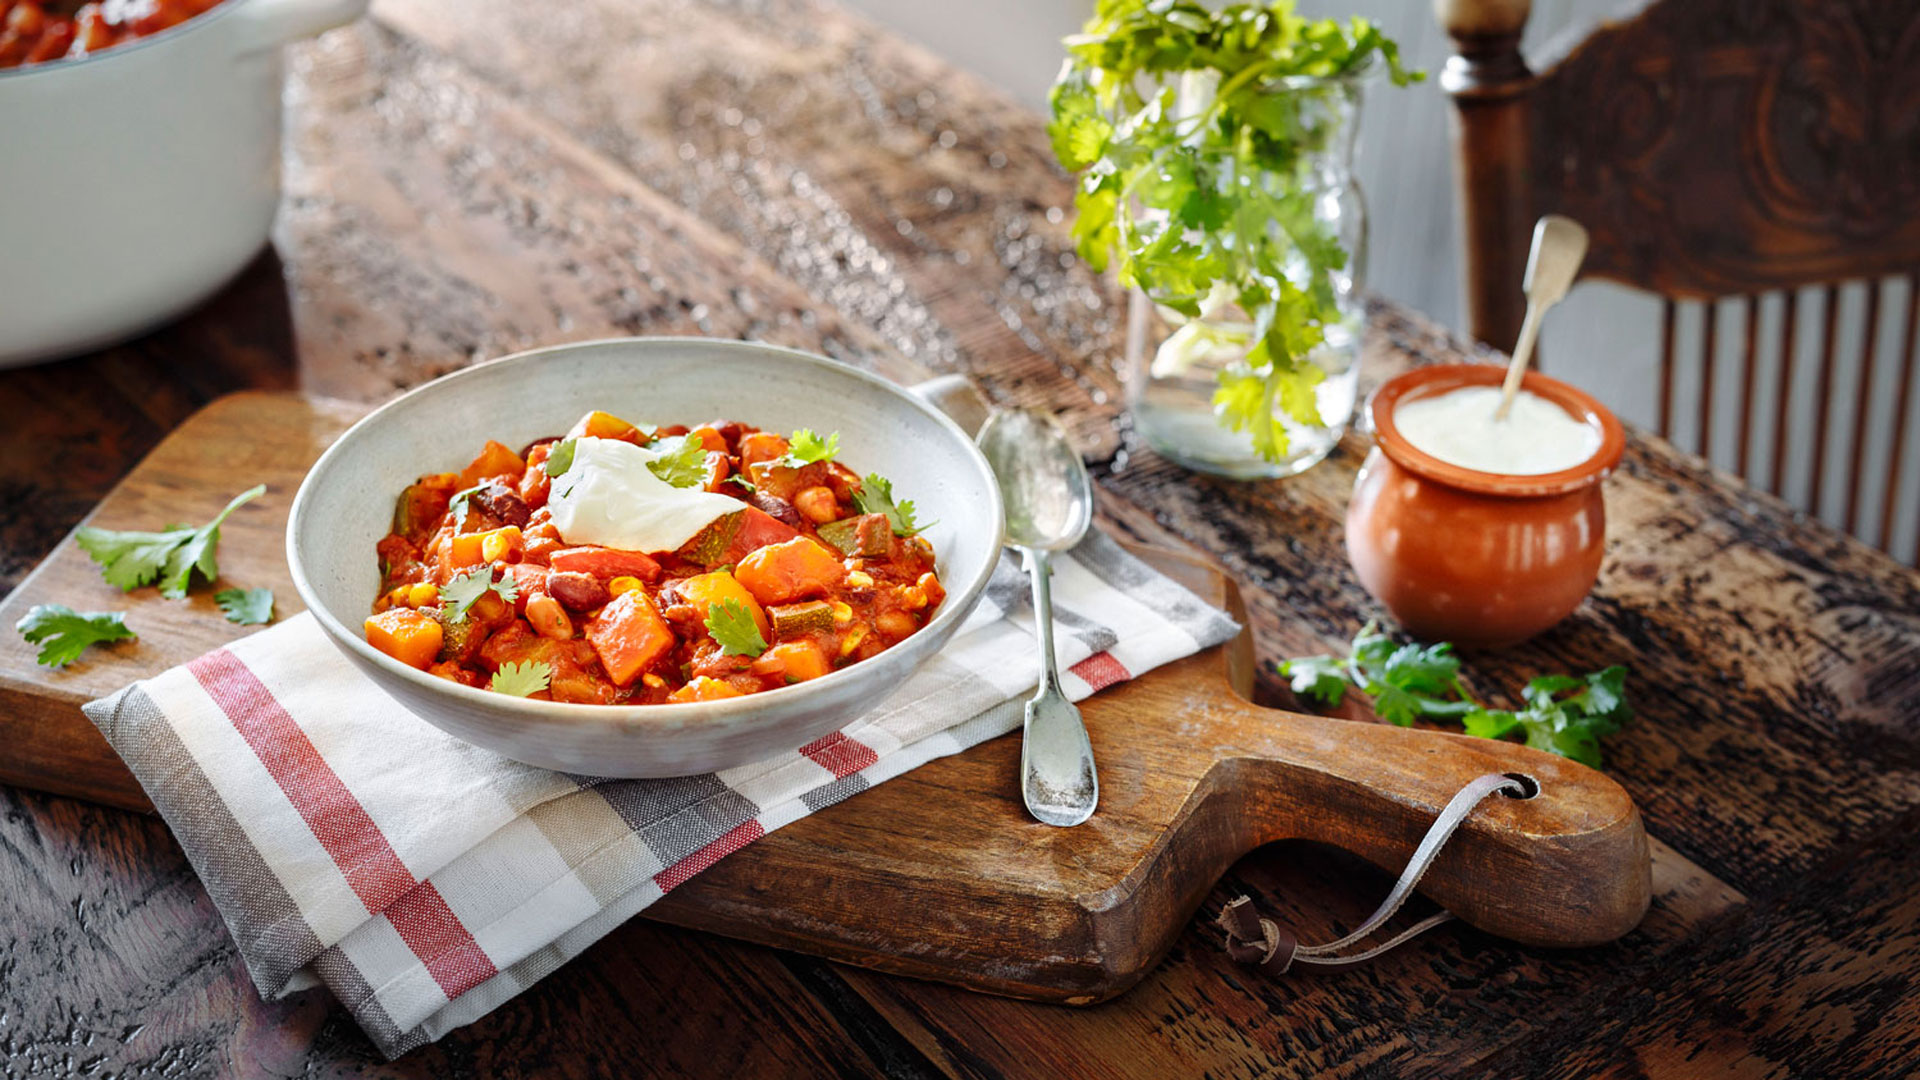 Bowl of vegetarian chili with sour cream on wooden cutting board